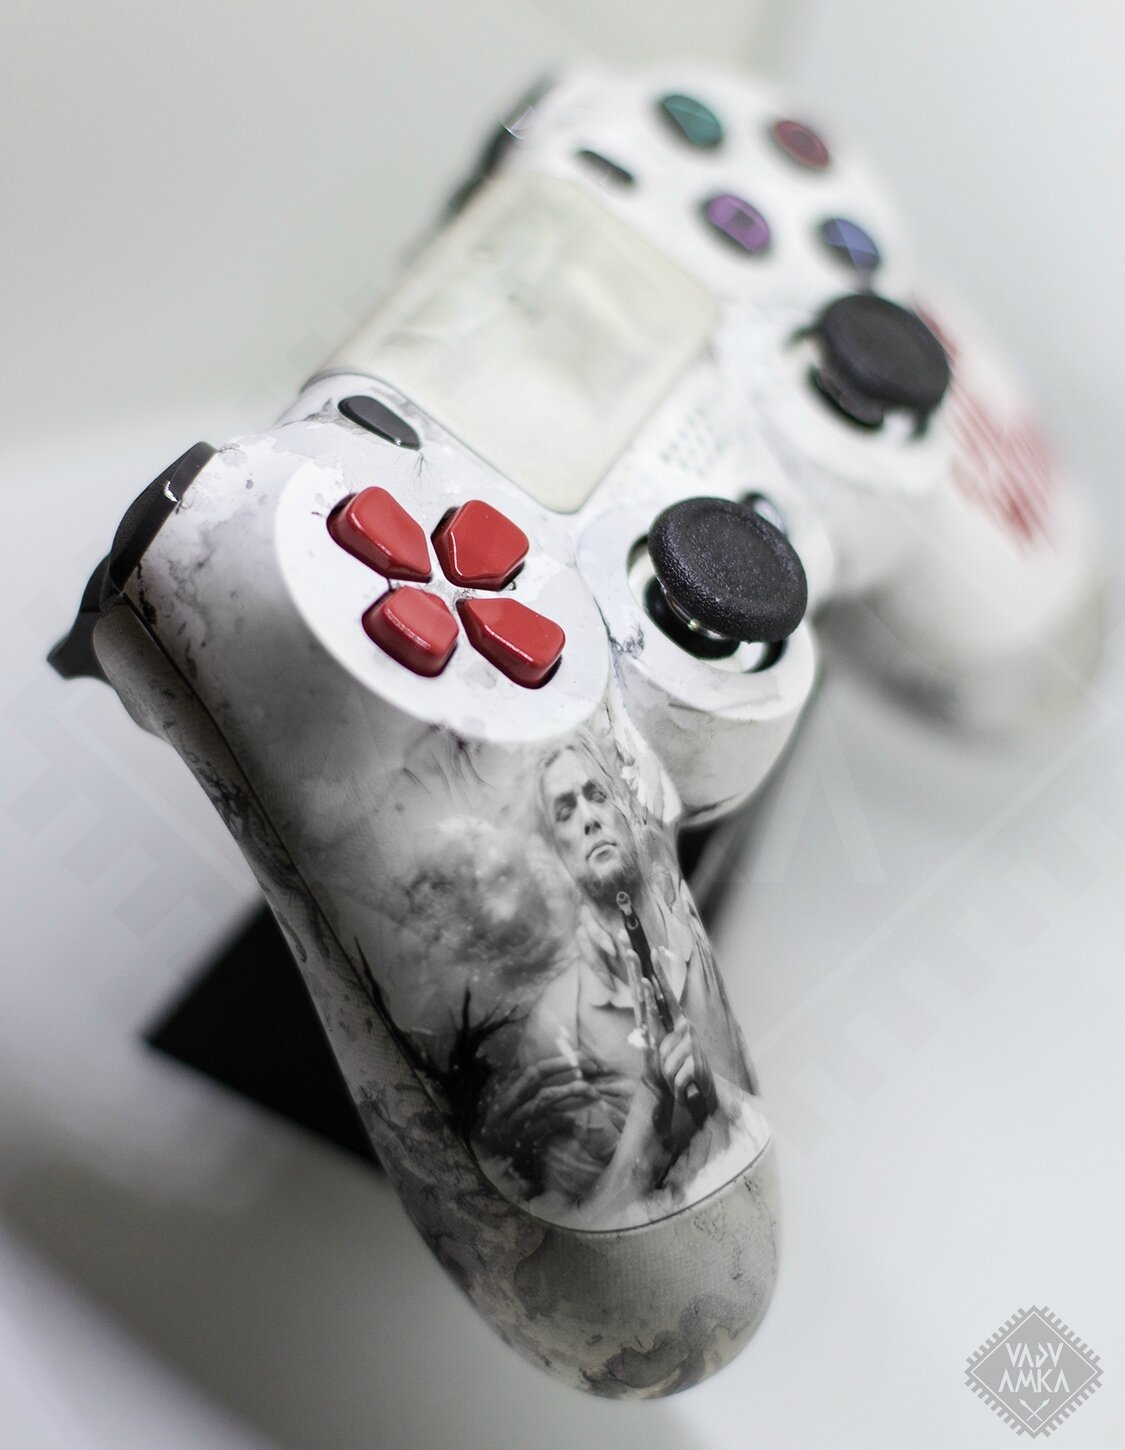 The Evil Within 2 Promotional Playstation 4 controller